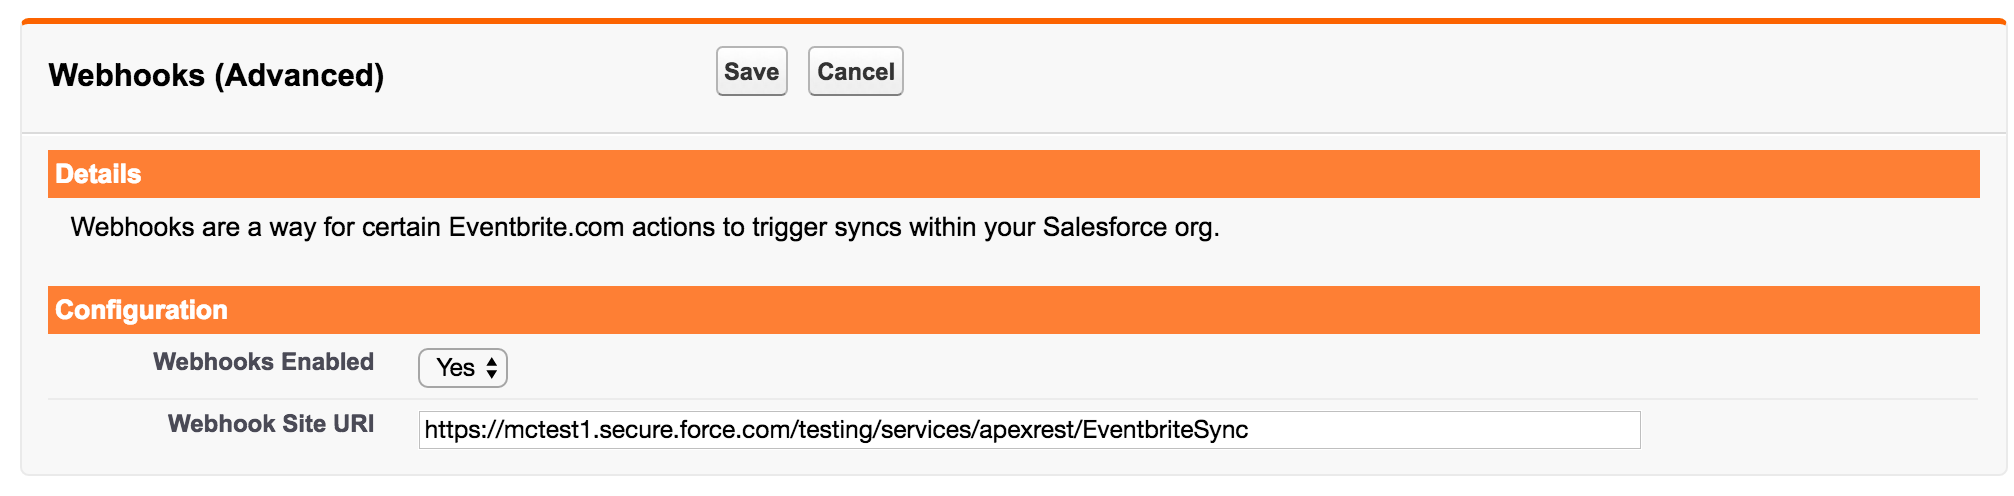 Last Sync Date is located under the Start Sync button.